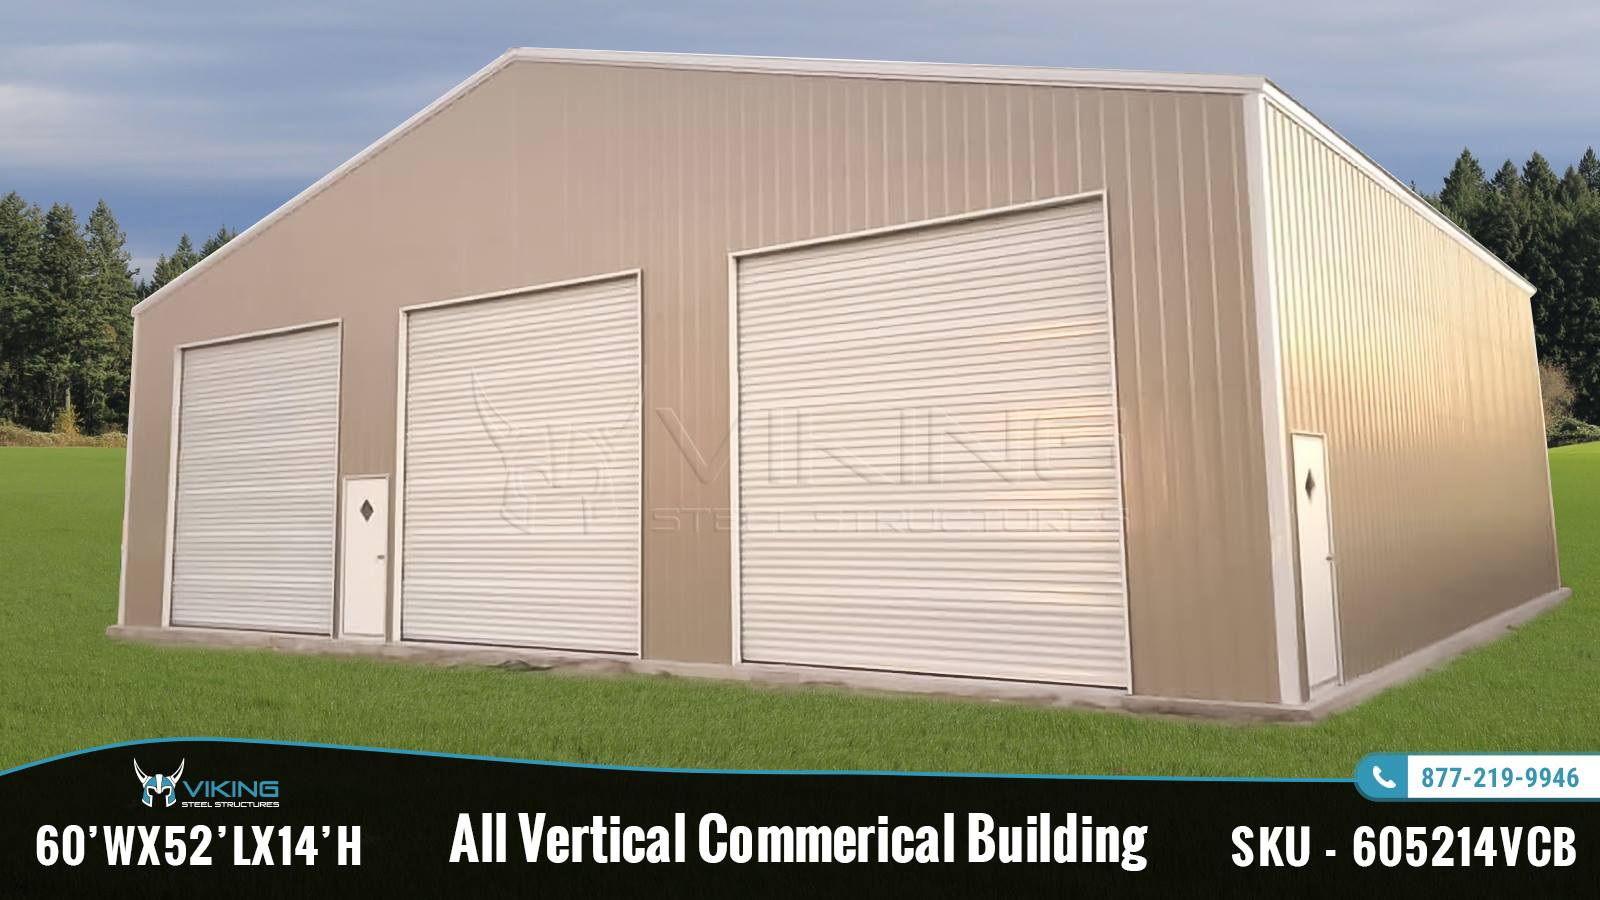 60x52x14 All Vertical Commercial Building Structure